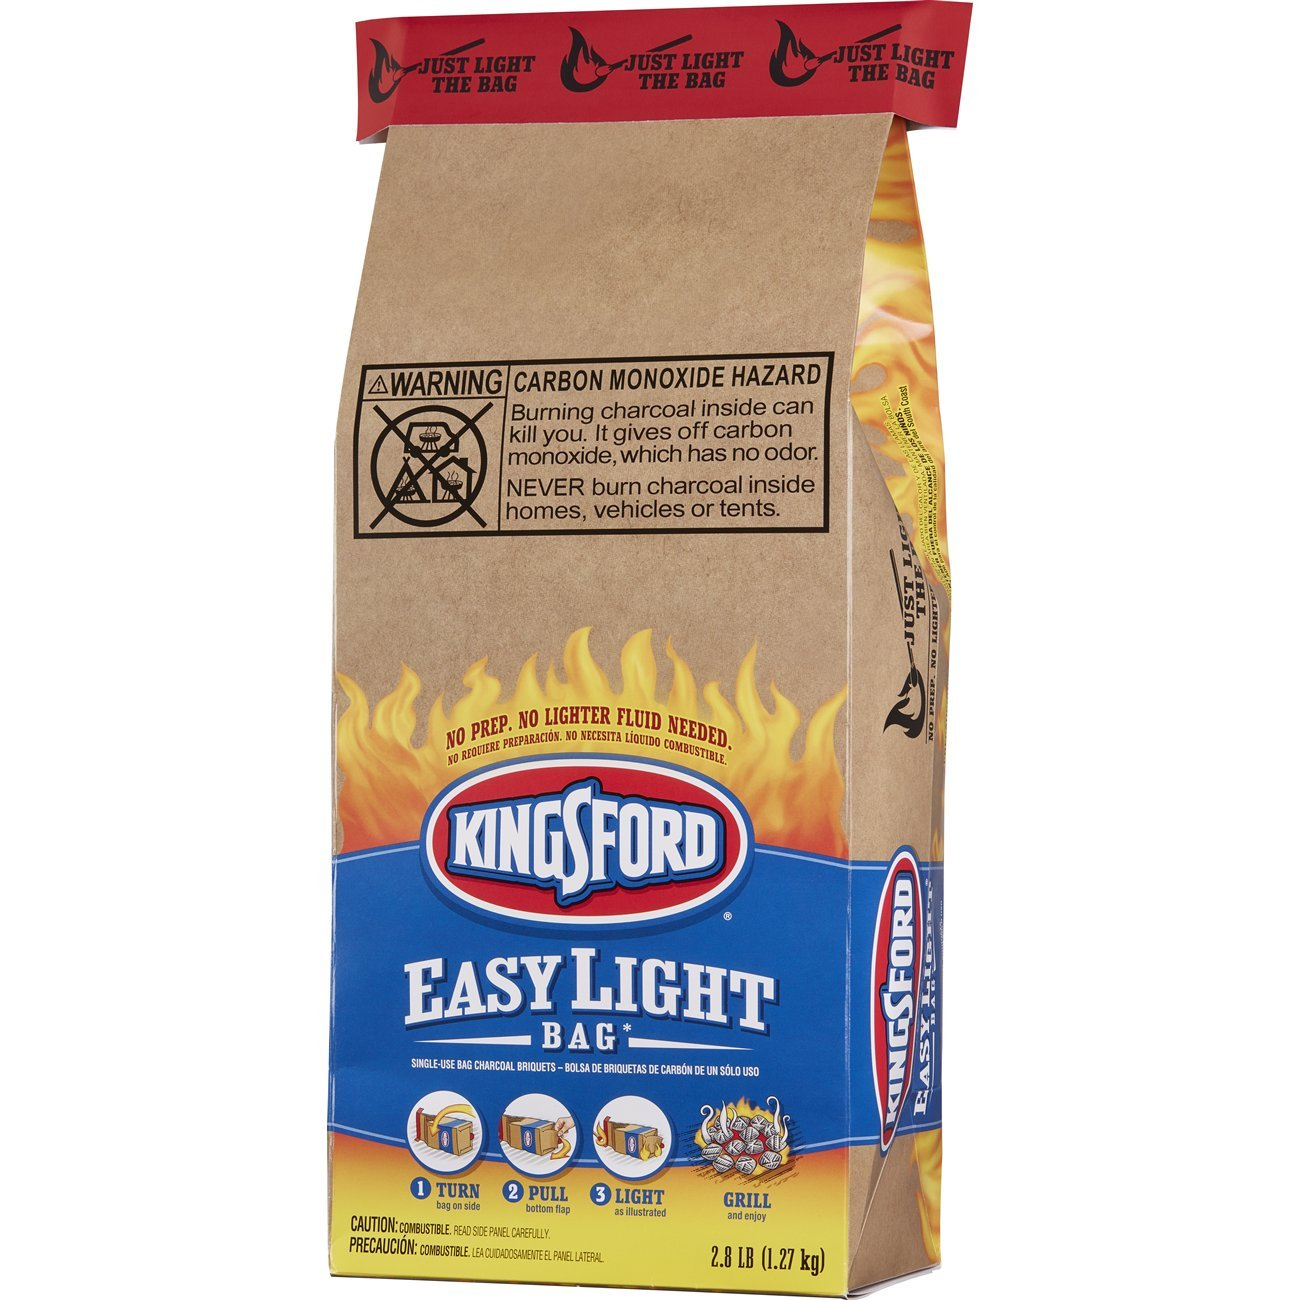 Amazon.com : Kingsford Easy Light Bag, 2.8 Pounds (Pack of 2) : Patio, Lawn & Garden